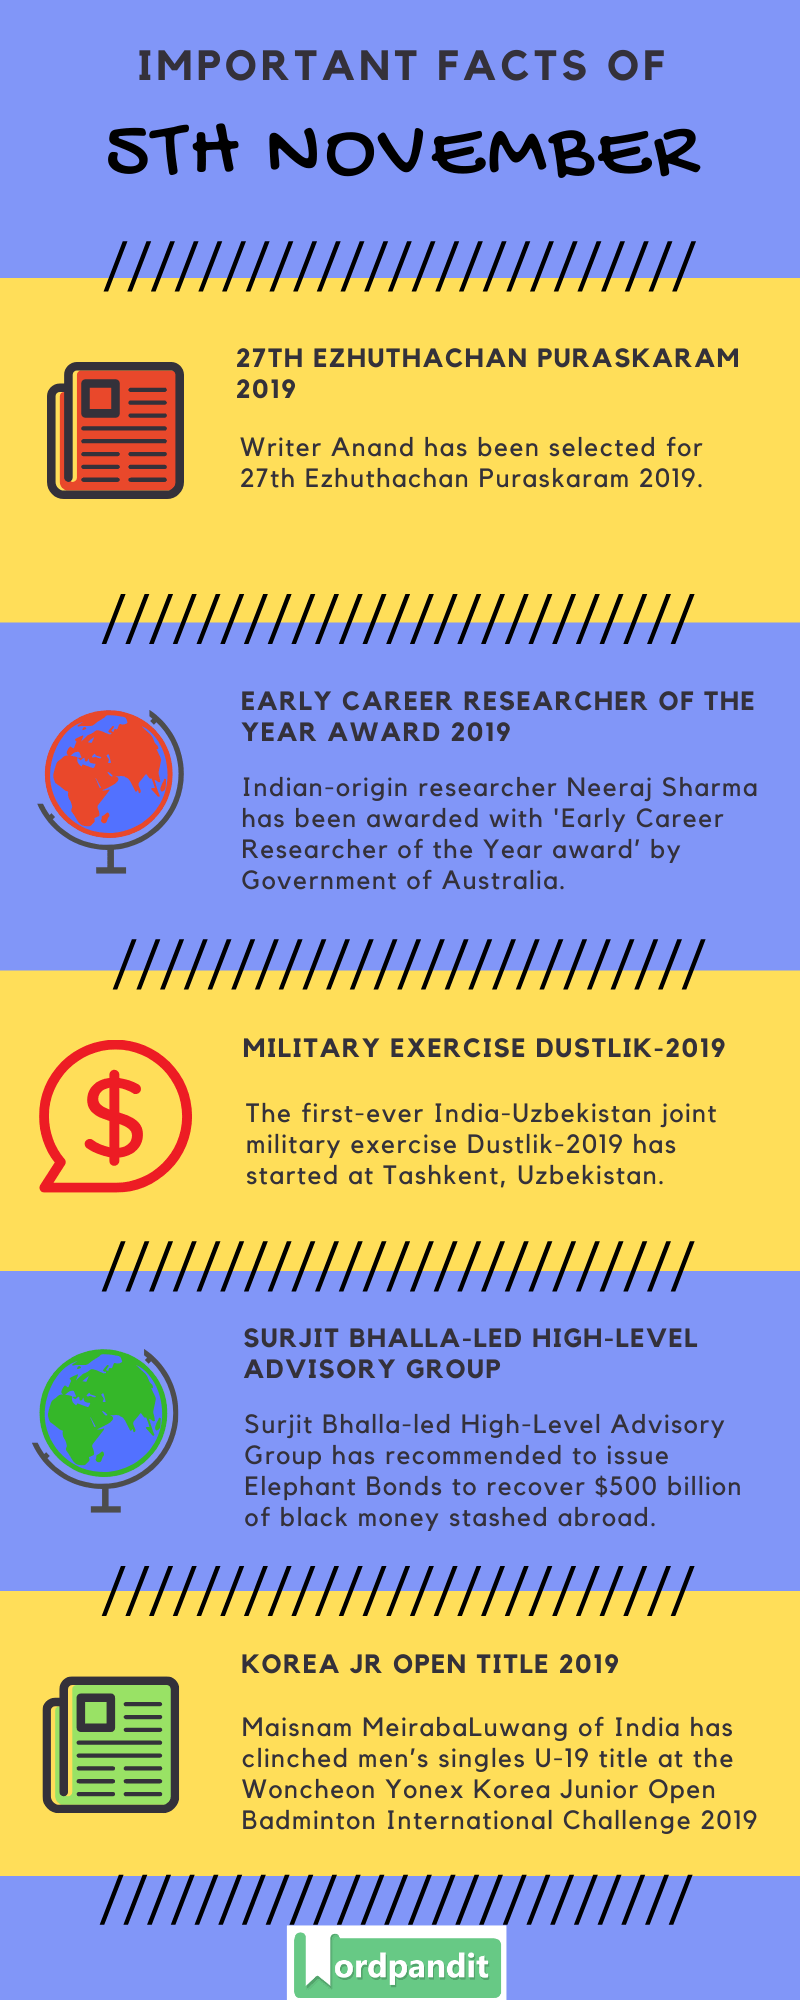 Daily Current Affairs 5 November 2019 Current Affairs Quiz 5 November 2019 Current Affairs Infographic